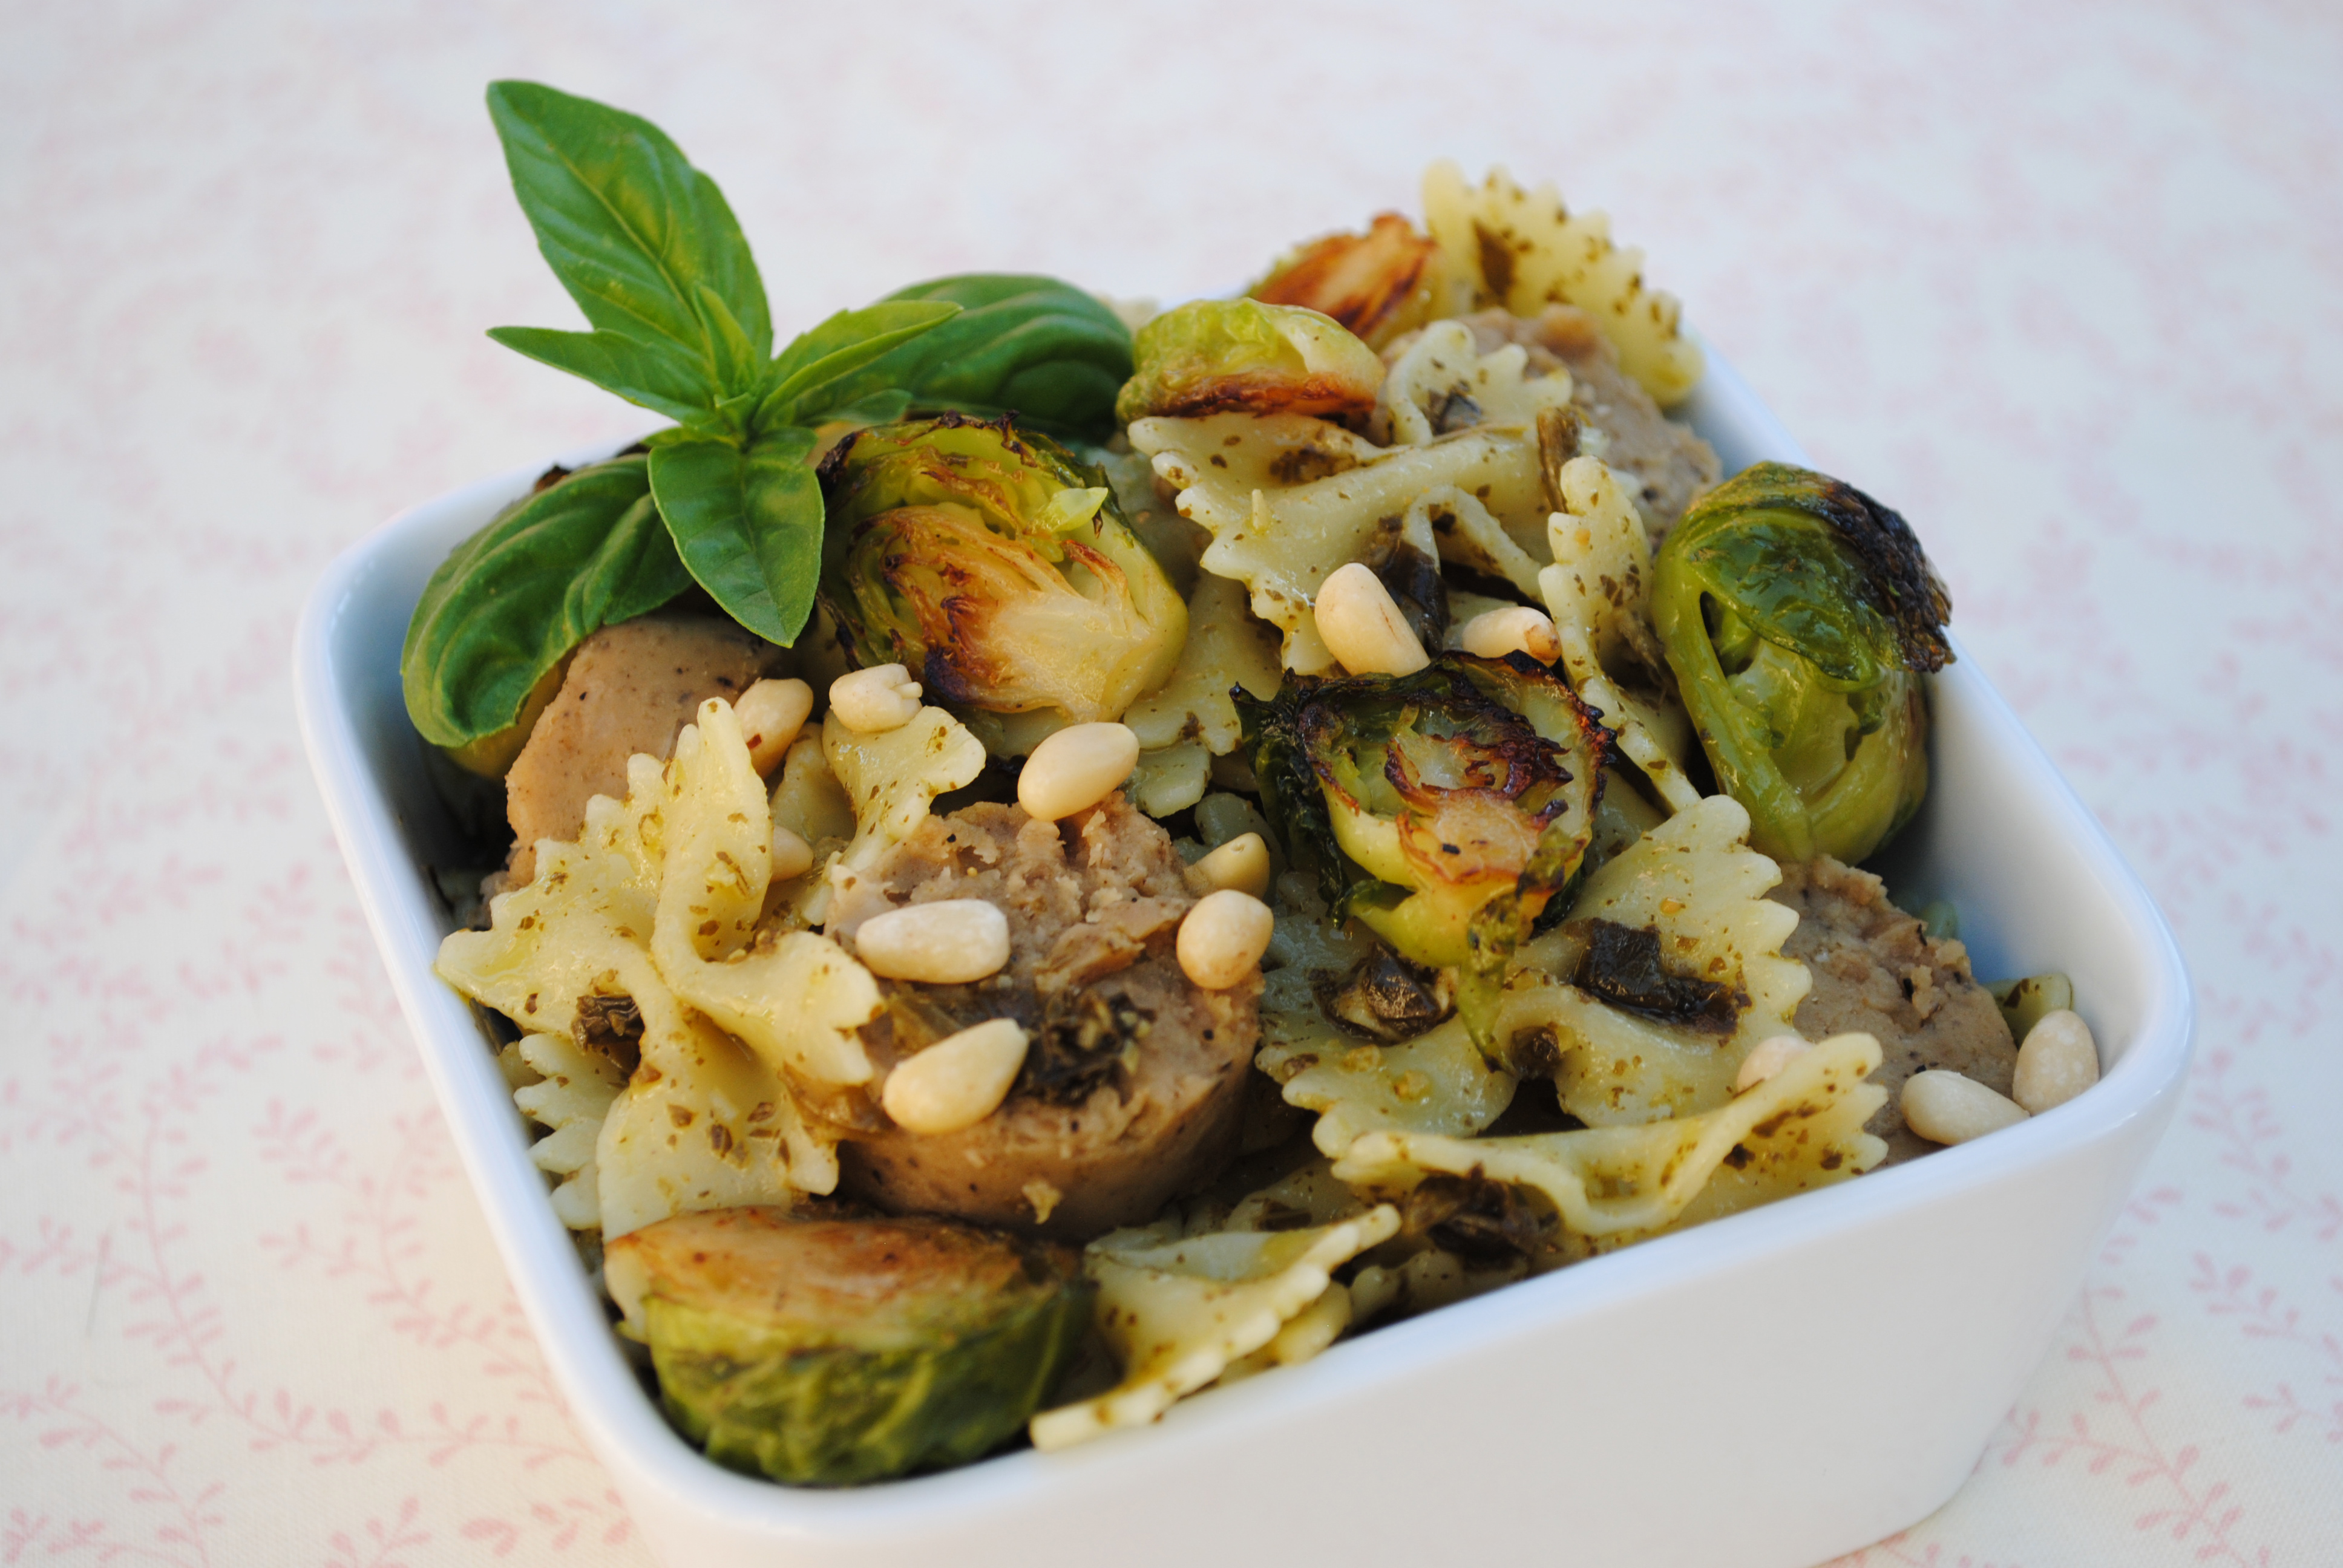 Vegan Pesto Pasta with Vegan Sausage and Grilled Brussels Sprouts